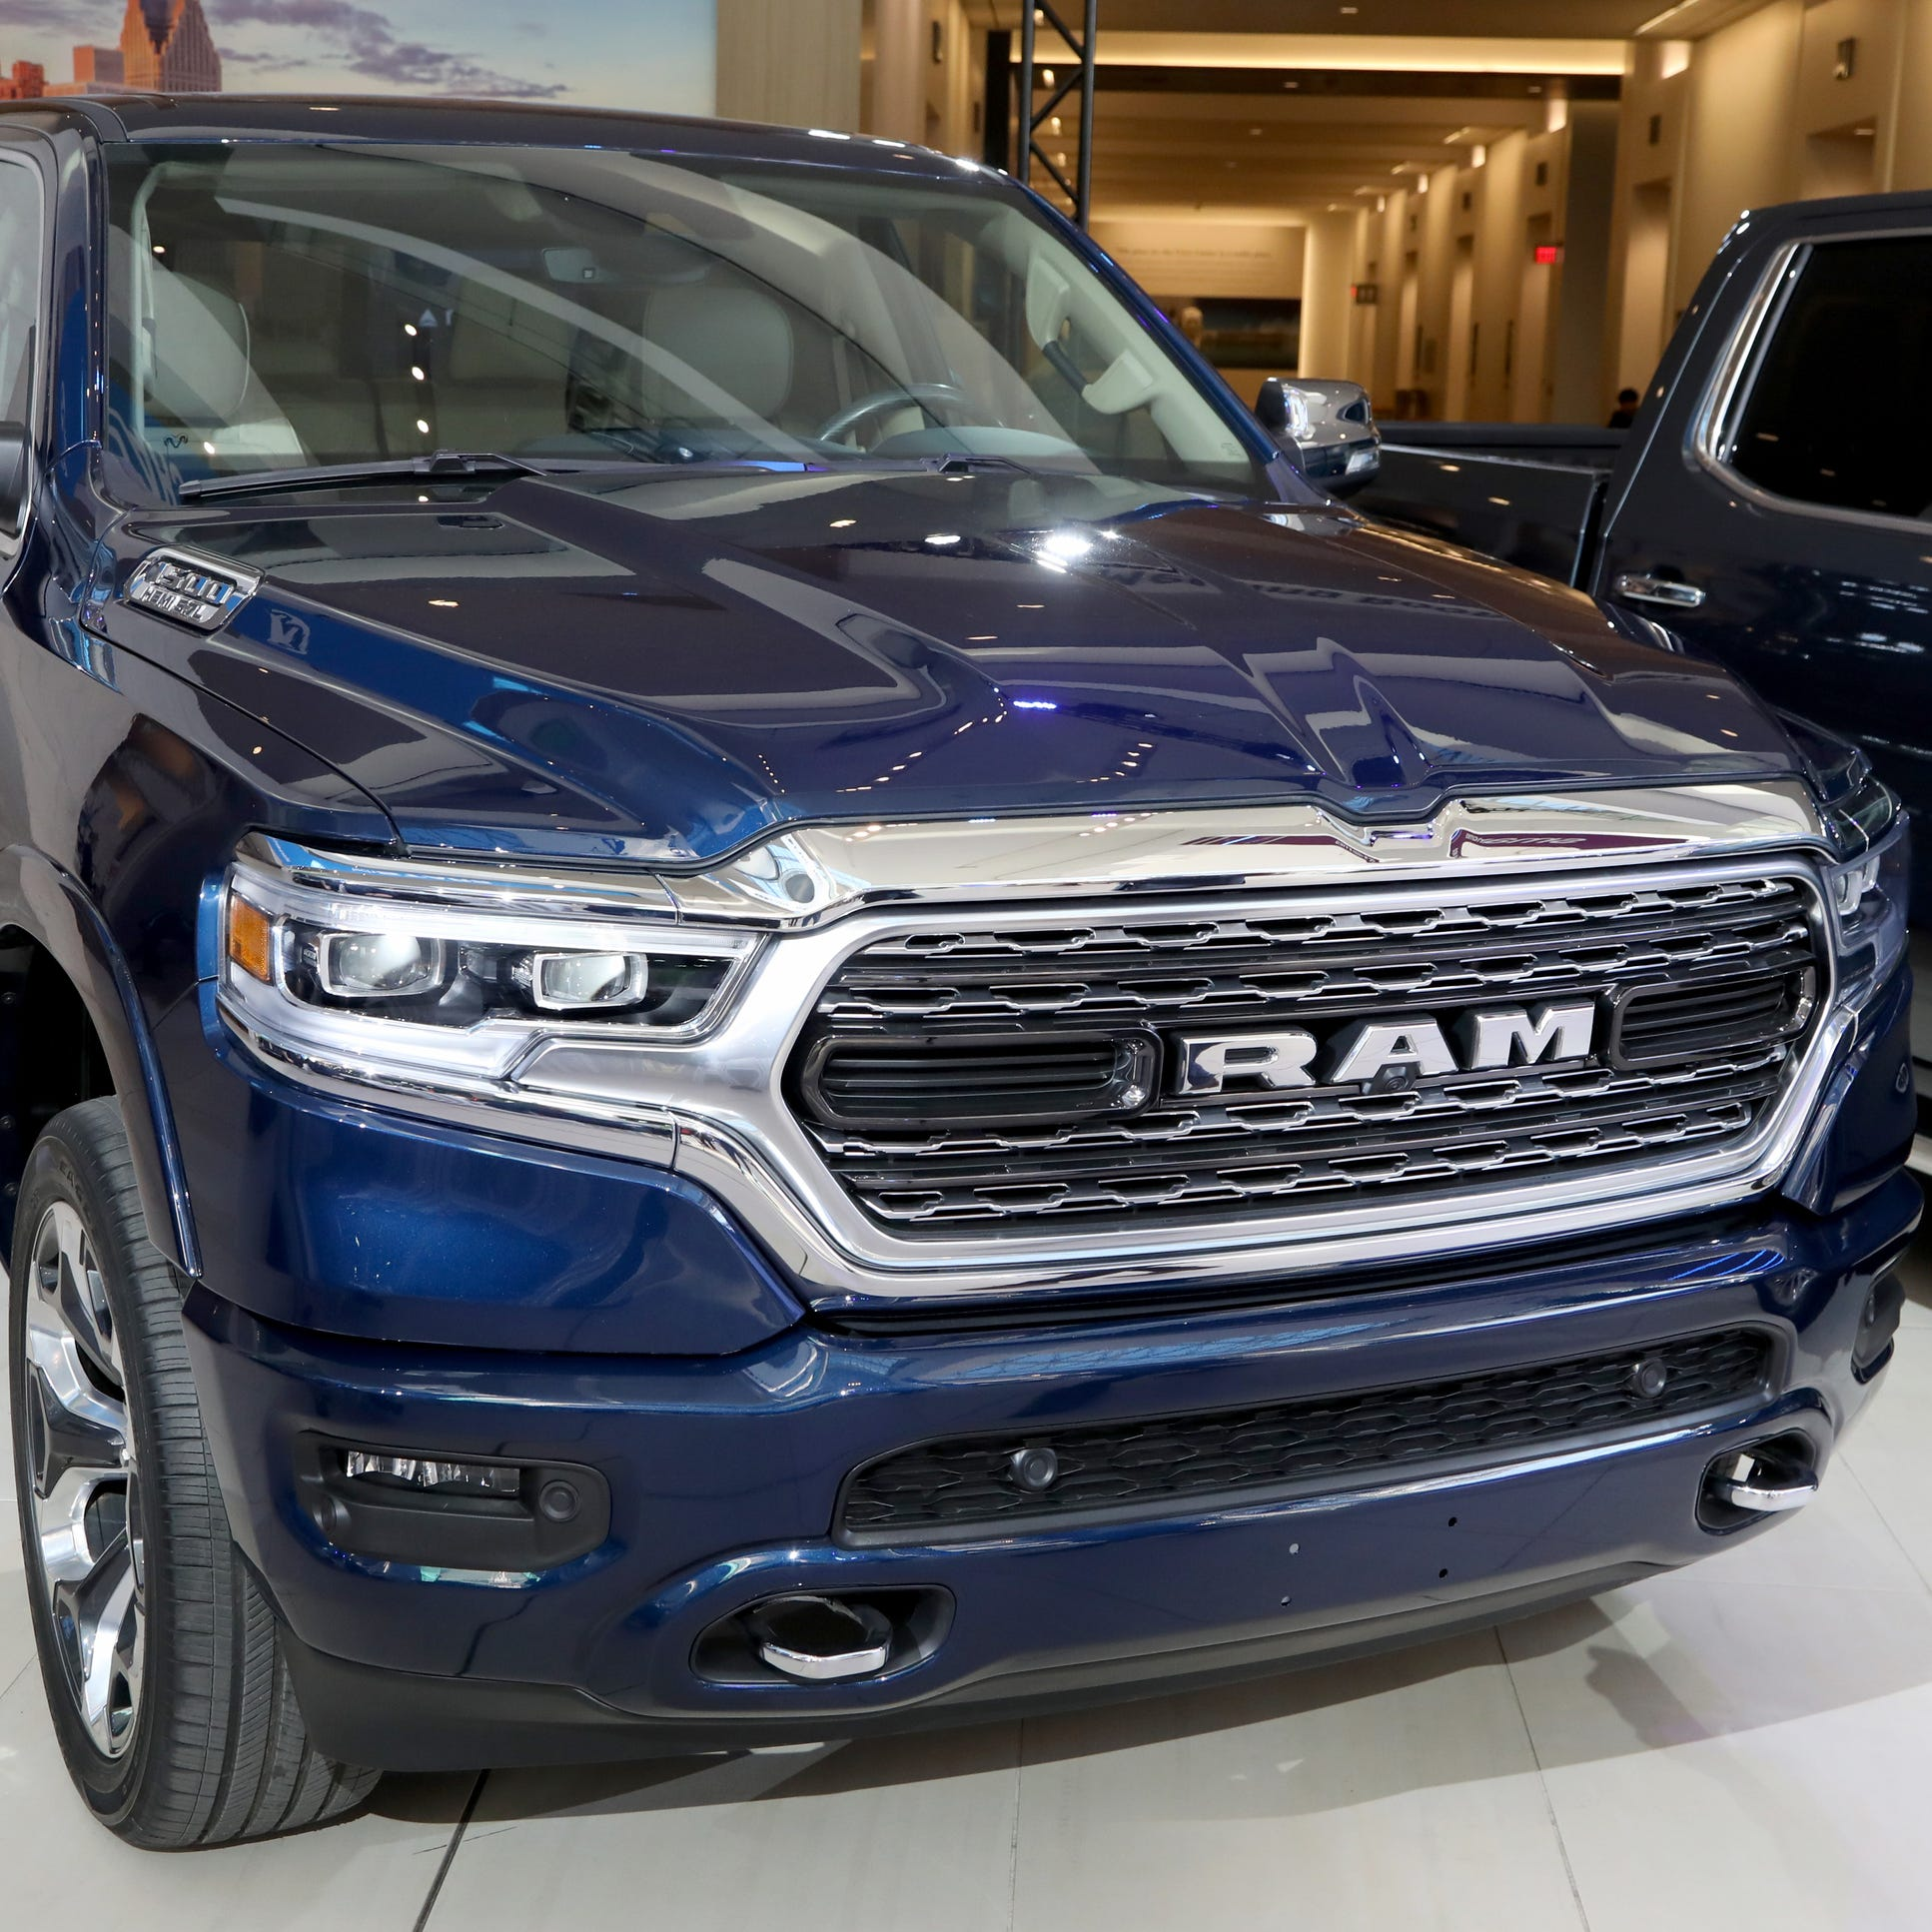 No fair! GM lets loose on FCA over Ram sales push